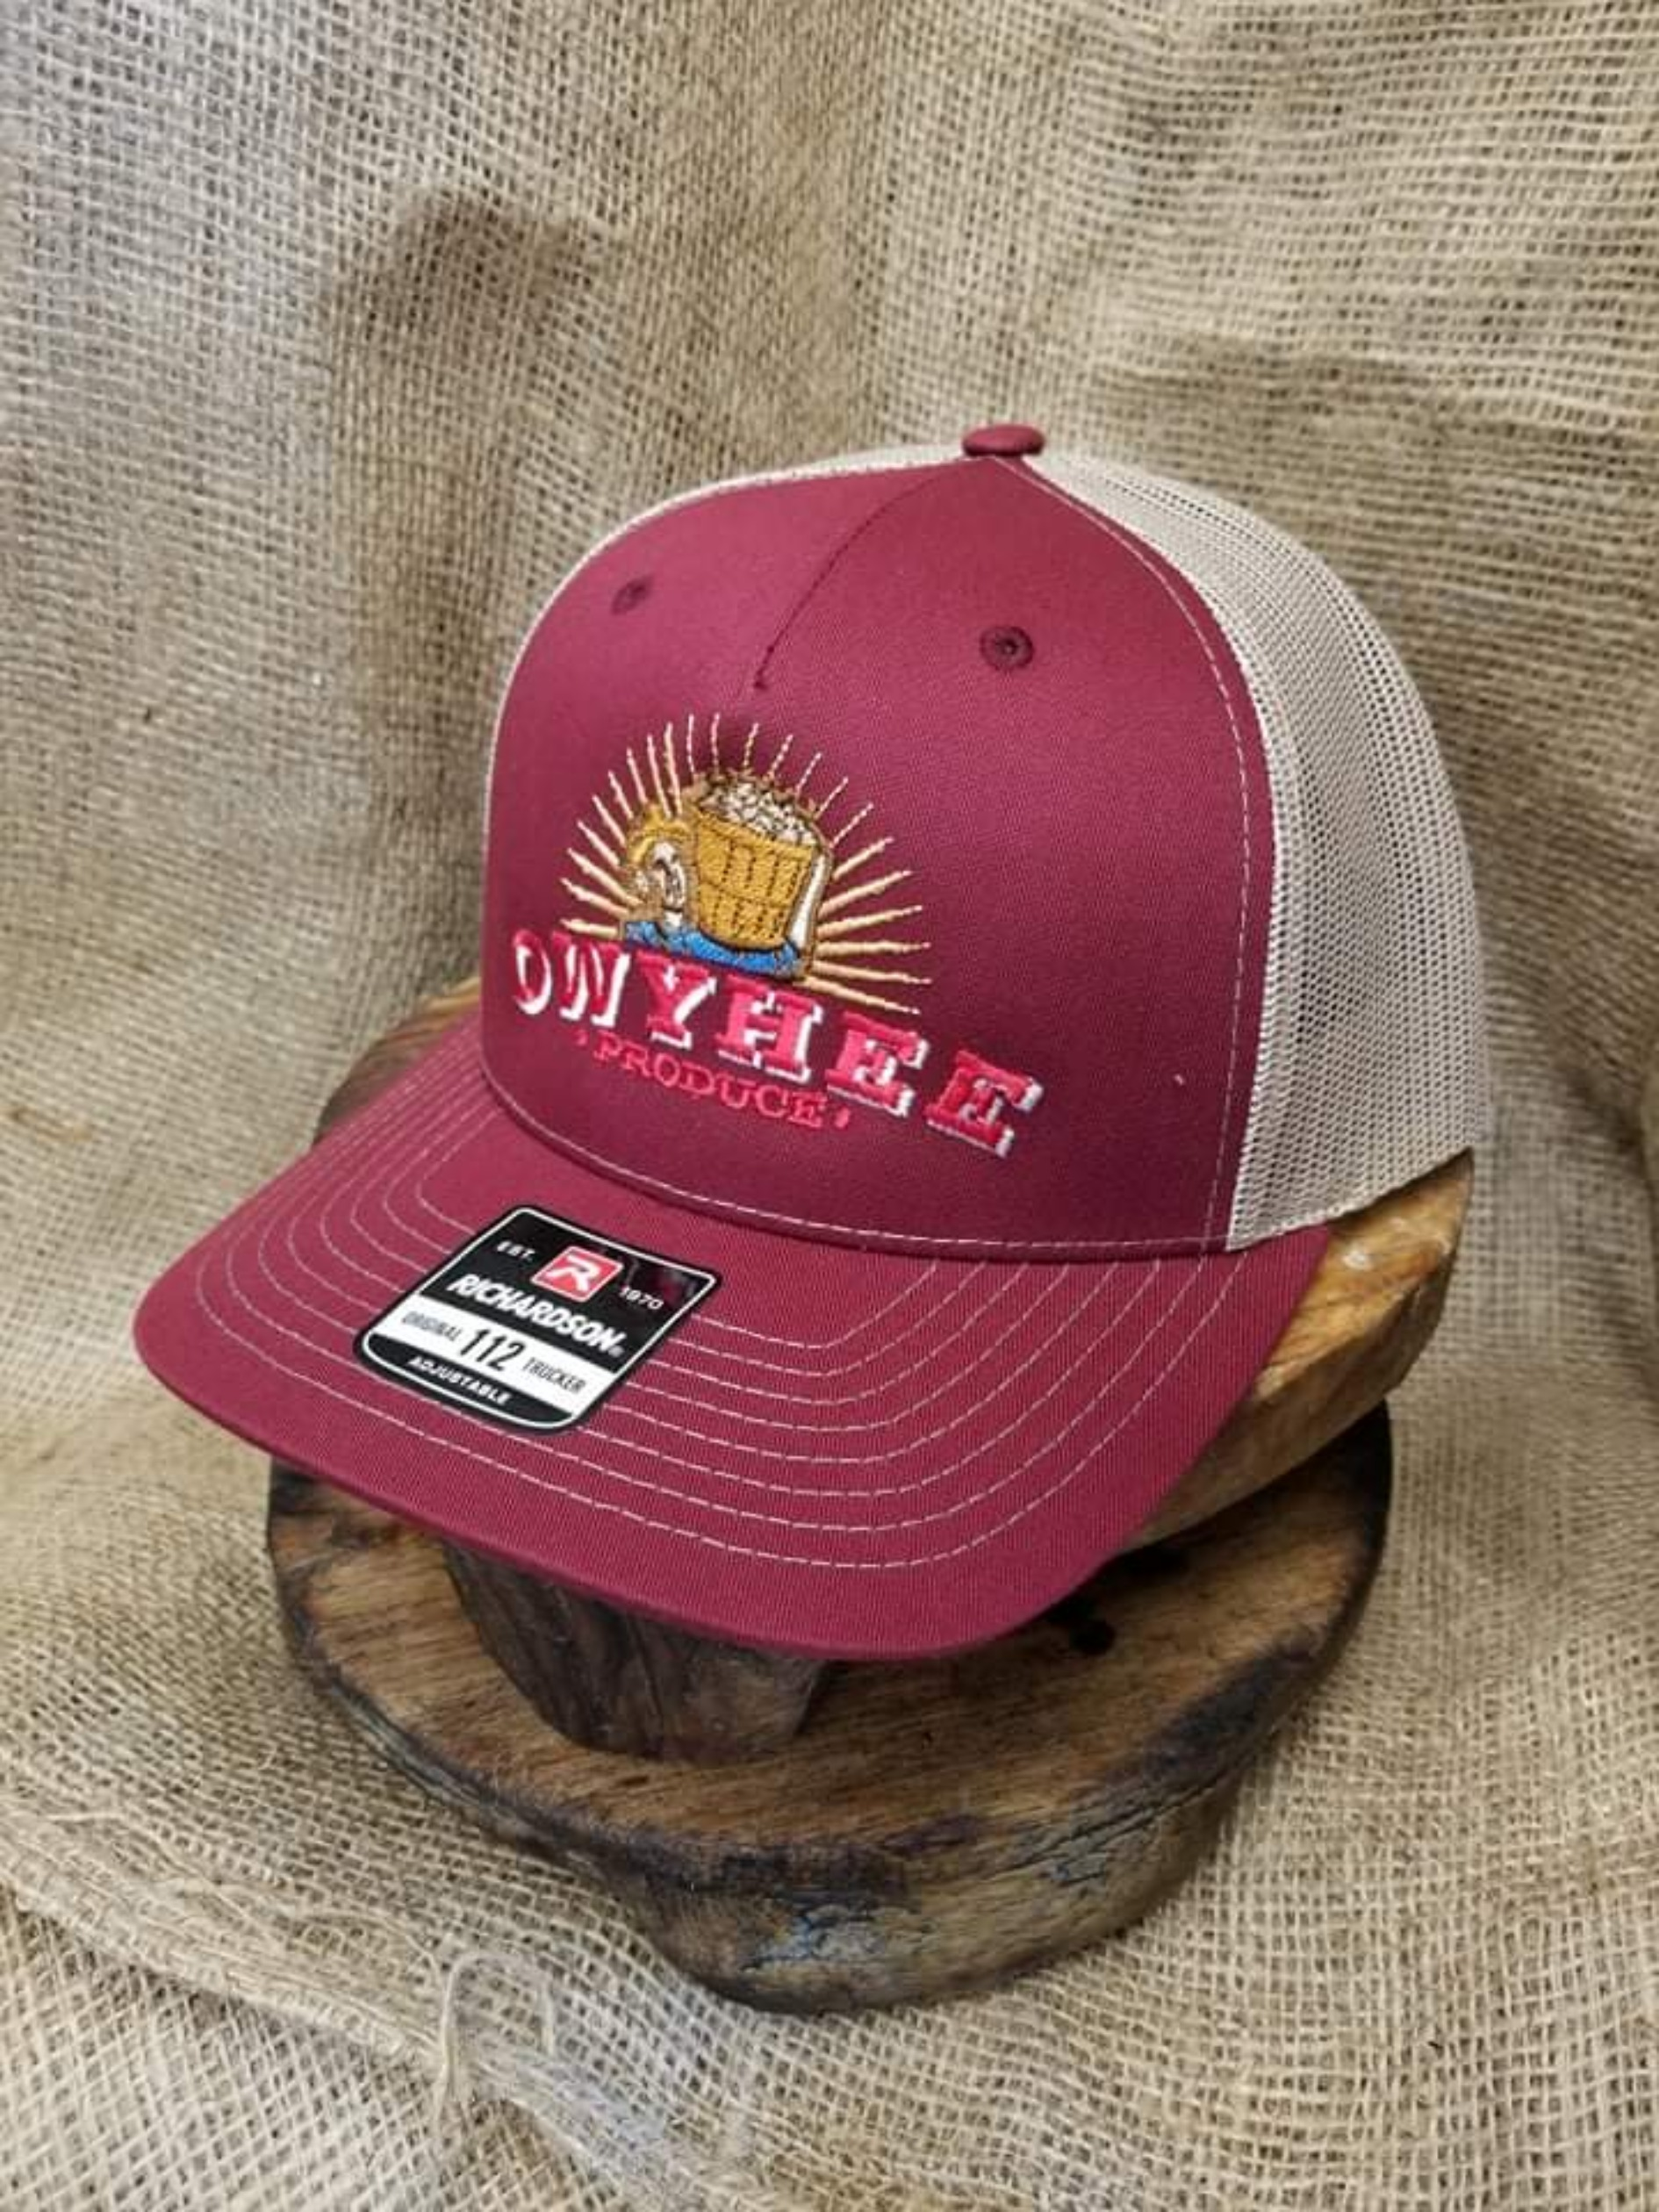 Maroon and tan back embroidered Owyhee produce hat